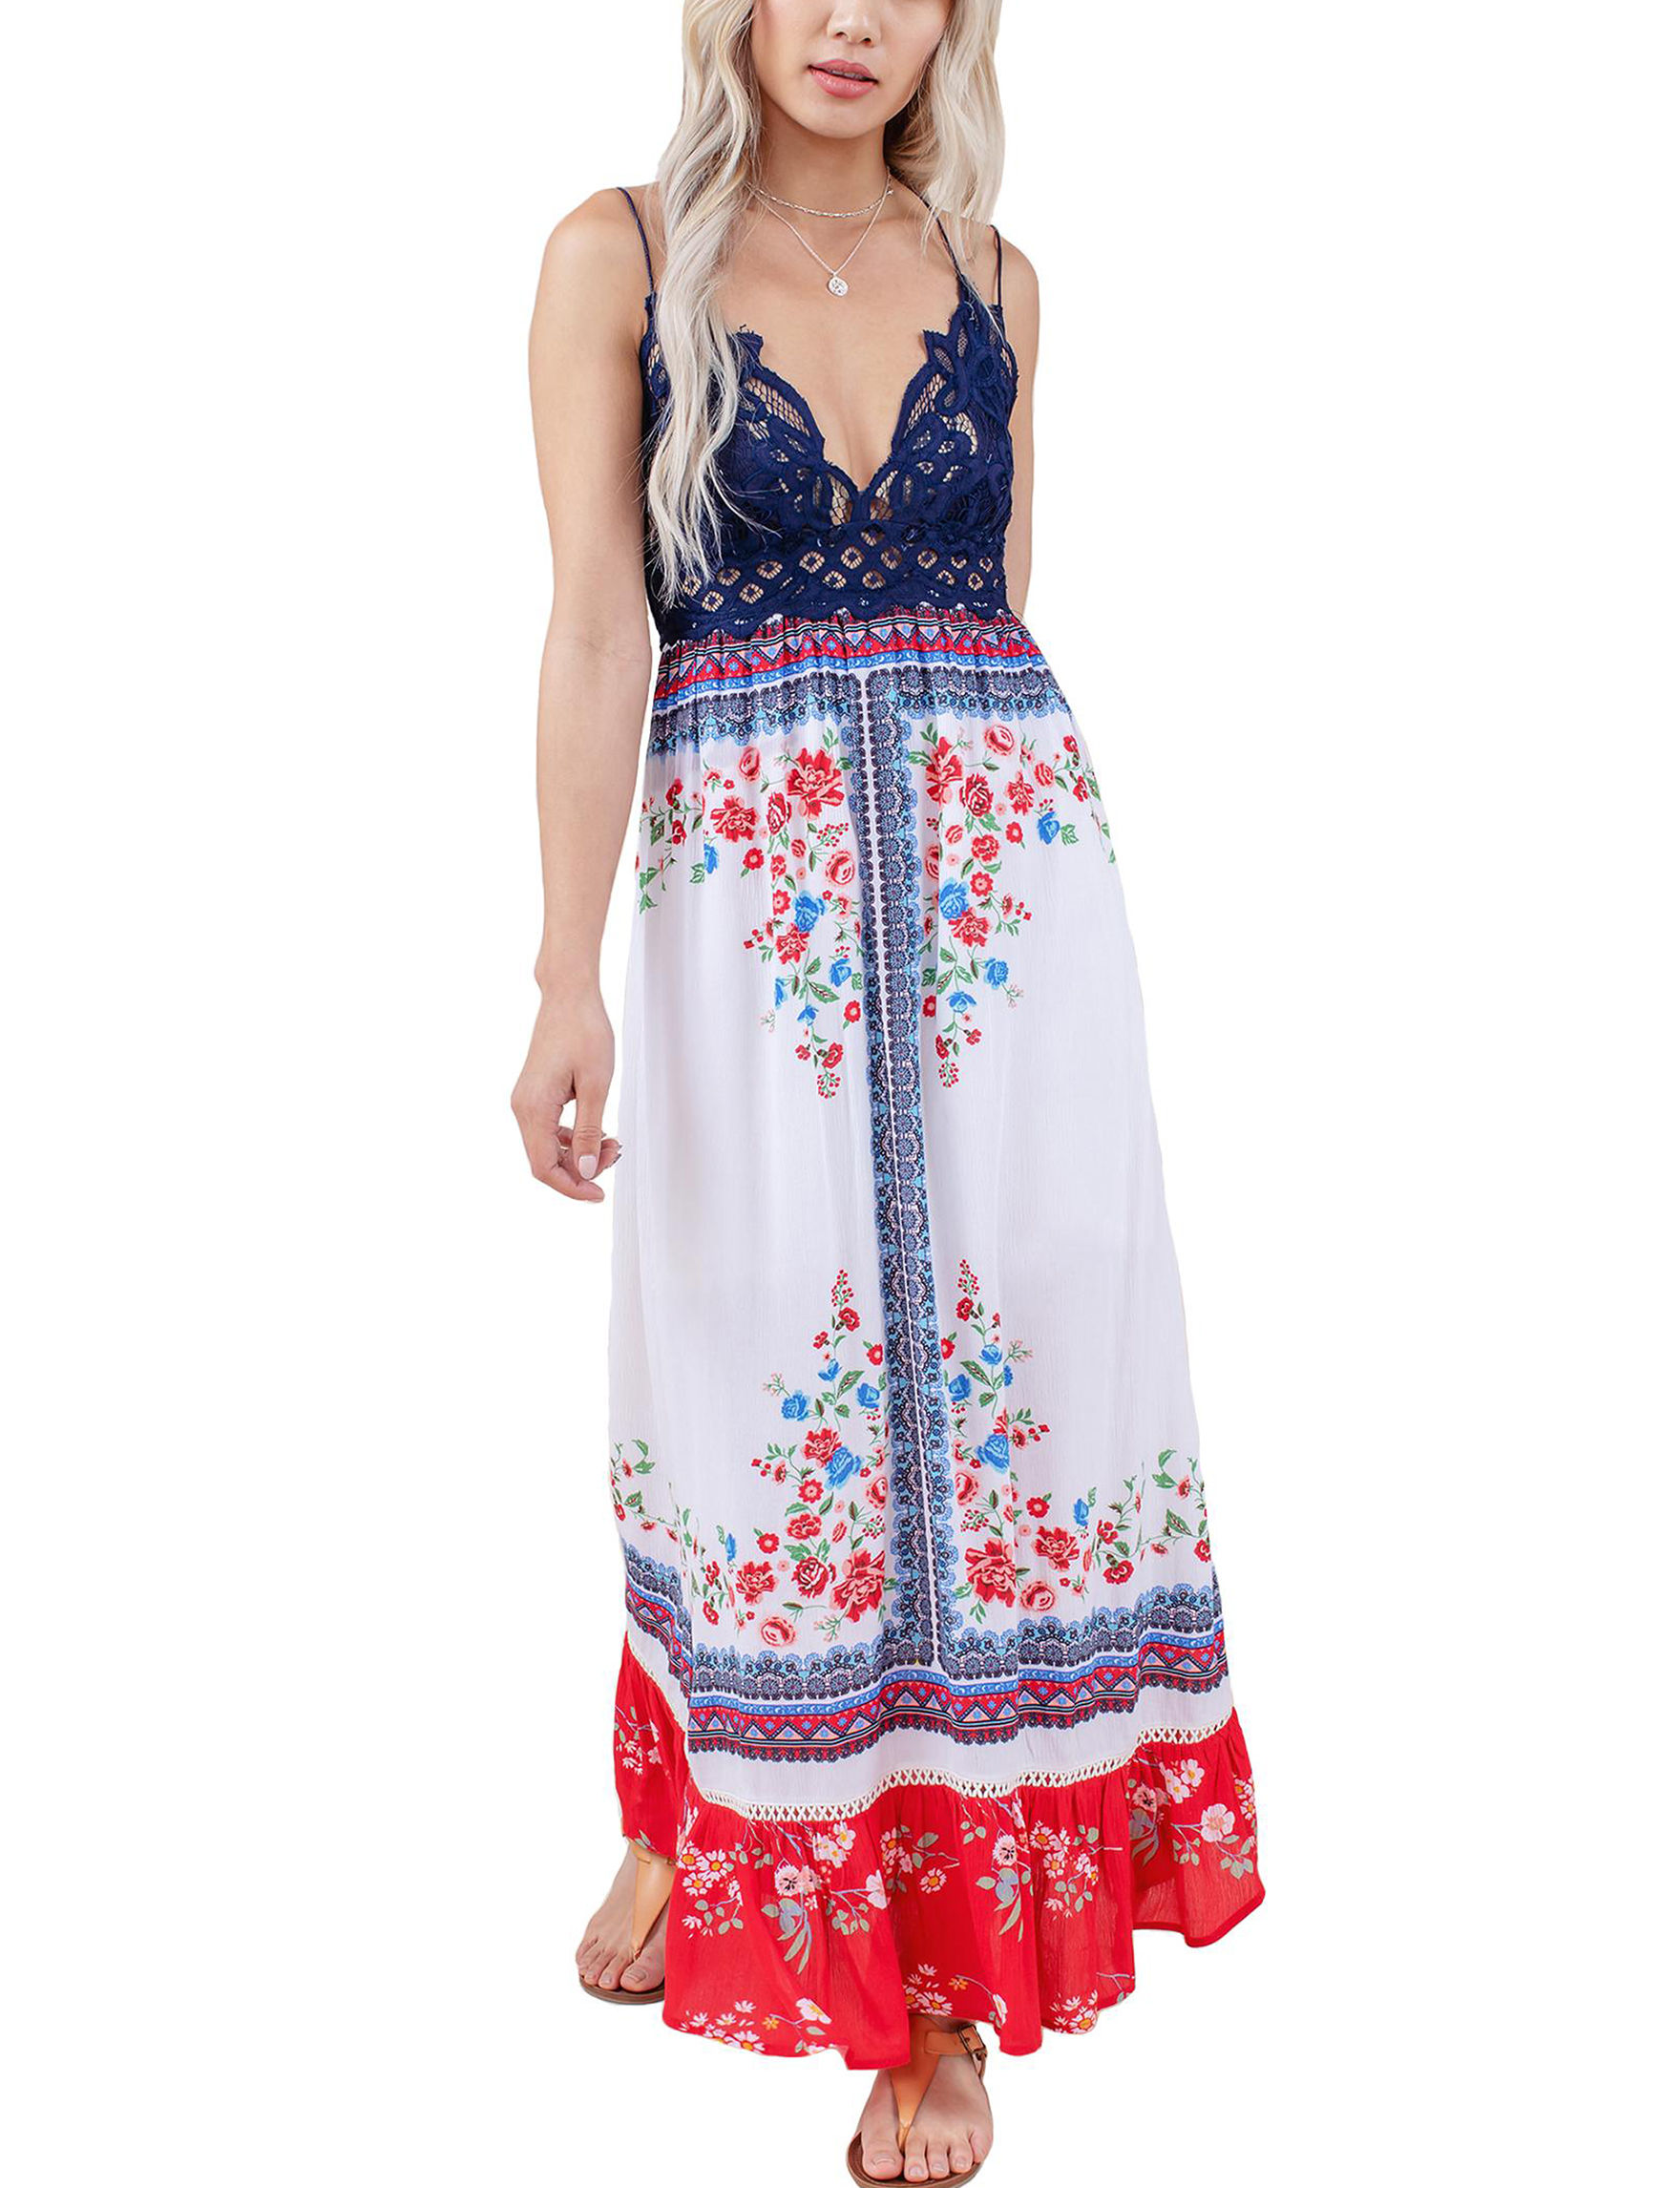 C + J Collections White / Red Everyday & Casual Maxi Dresses